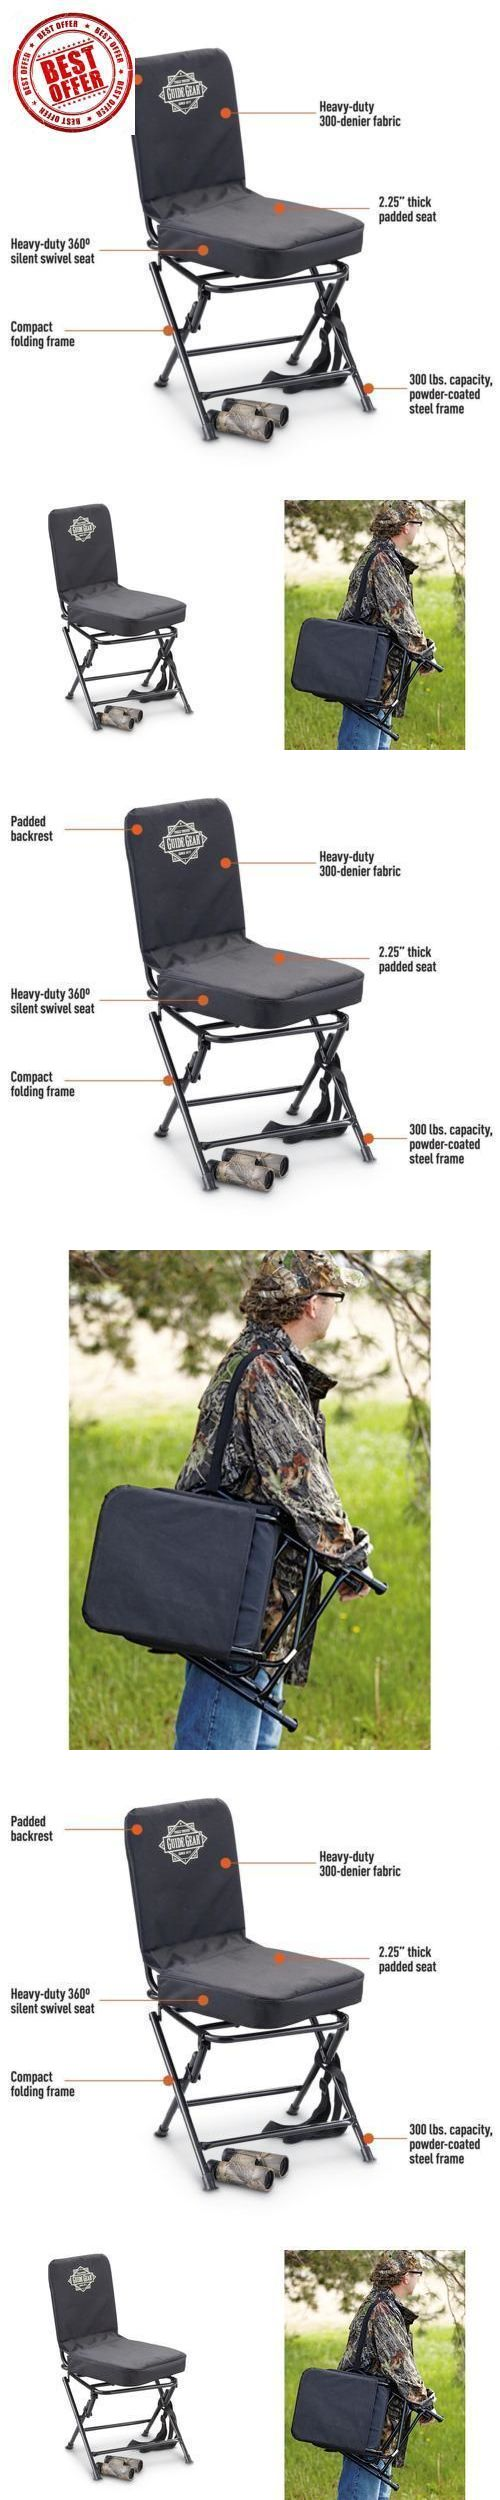 Seats and Chairs 52507 Portable Swivel Hunting Chair